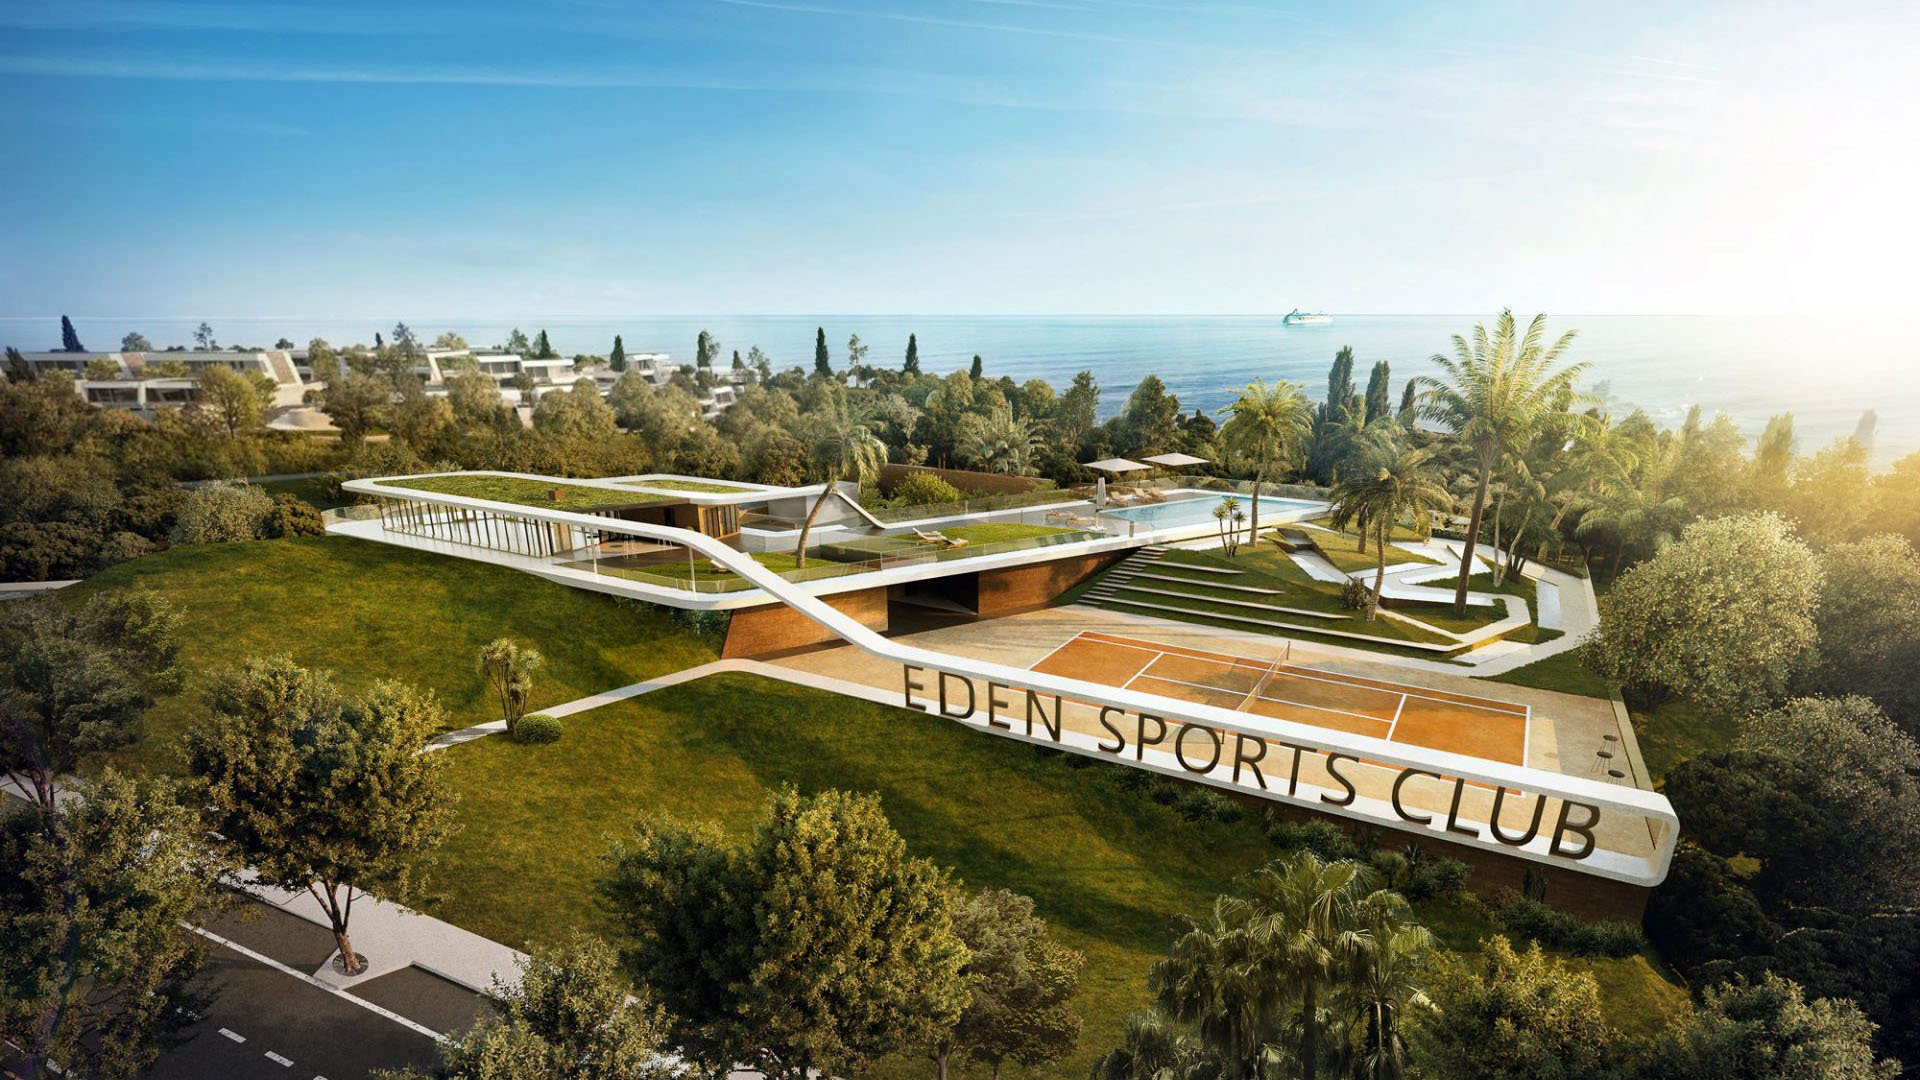 Eden: Luxury townhouses in an exclusive resort